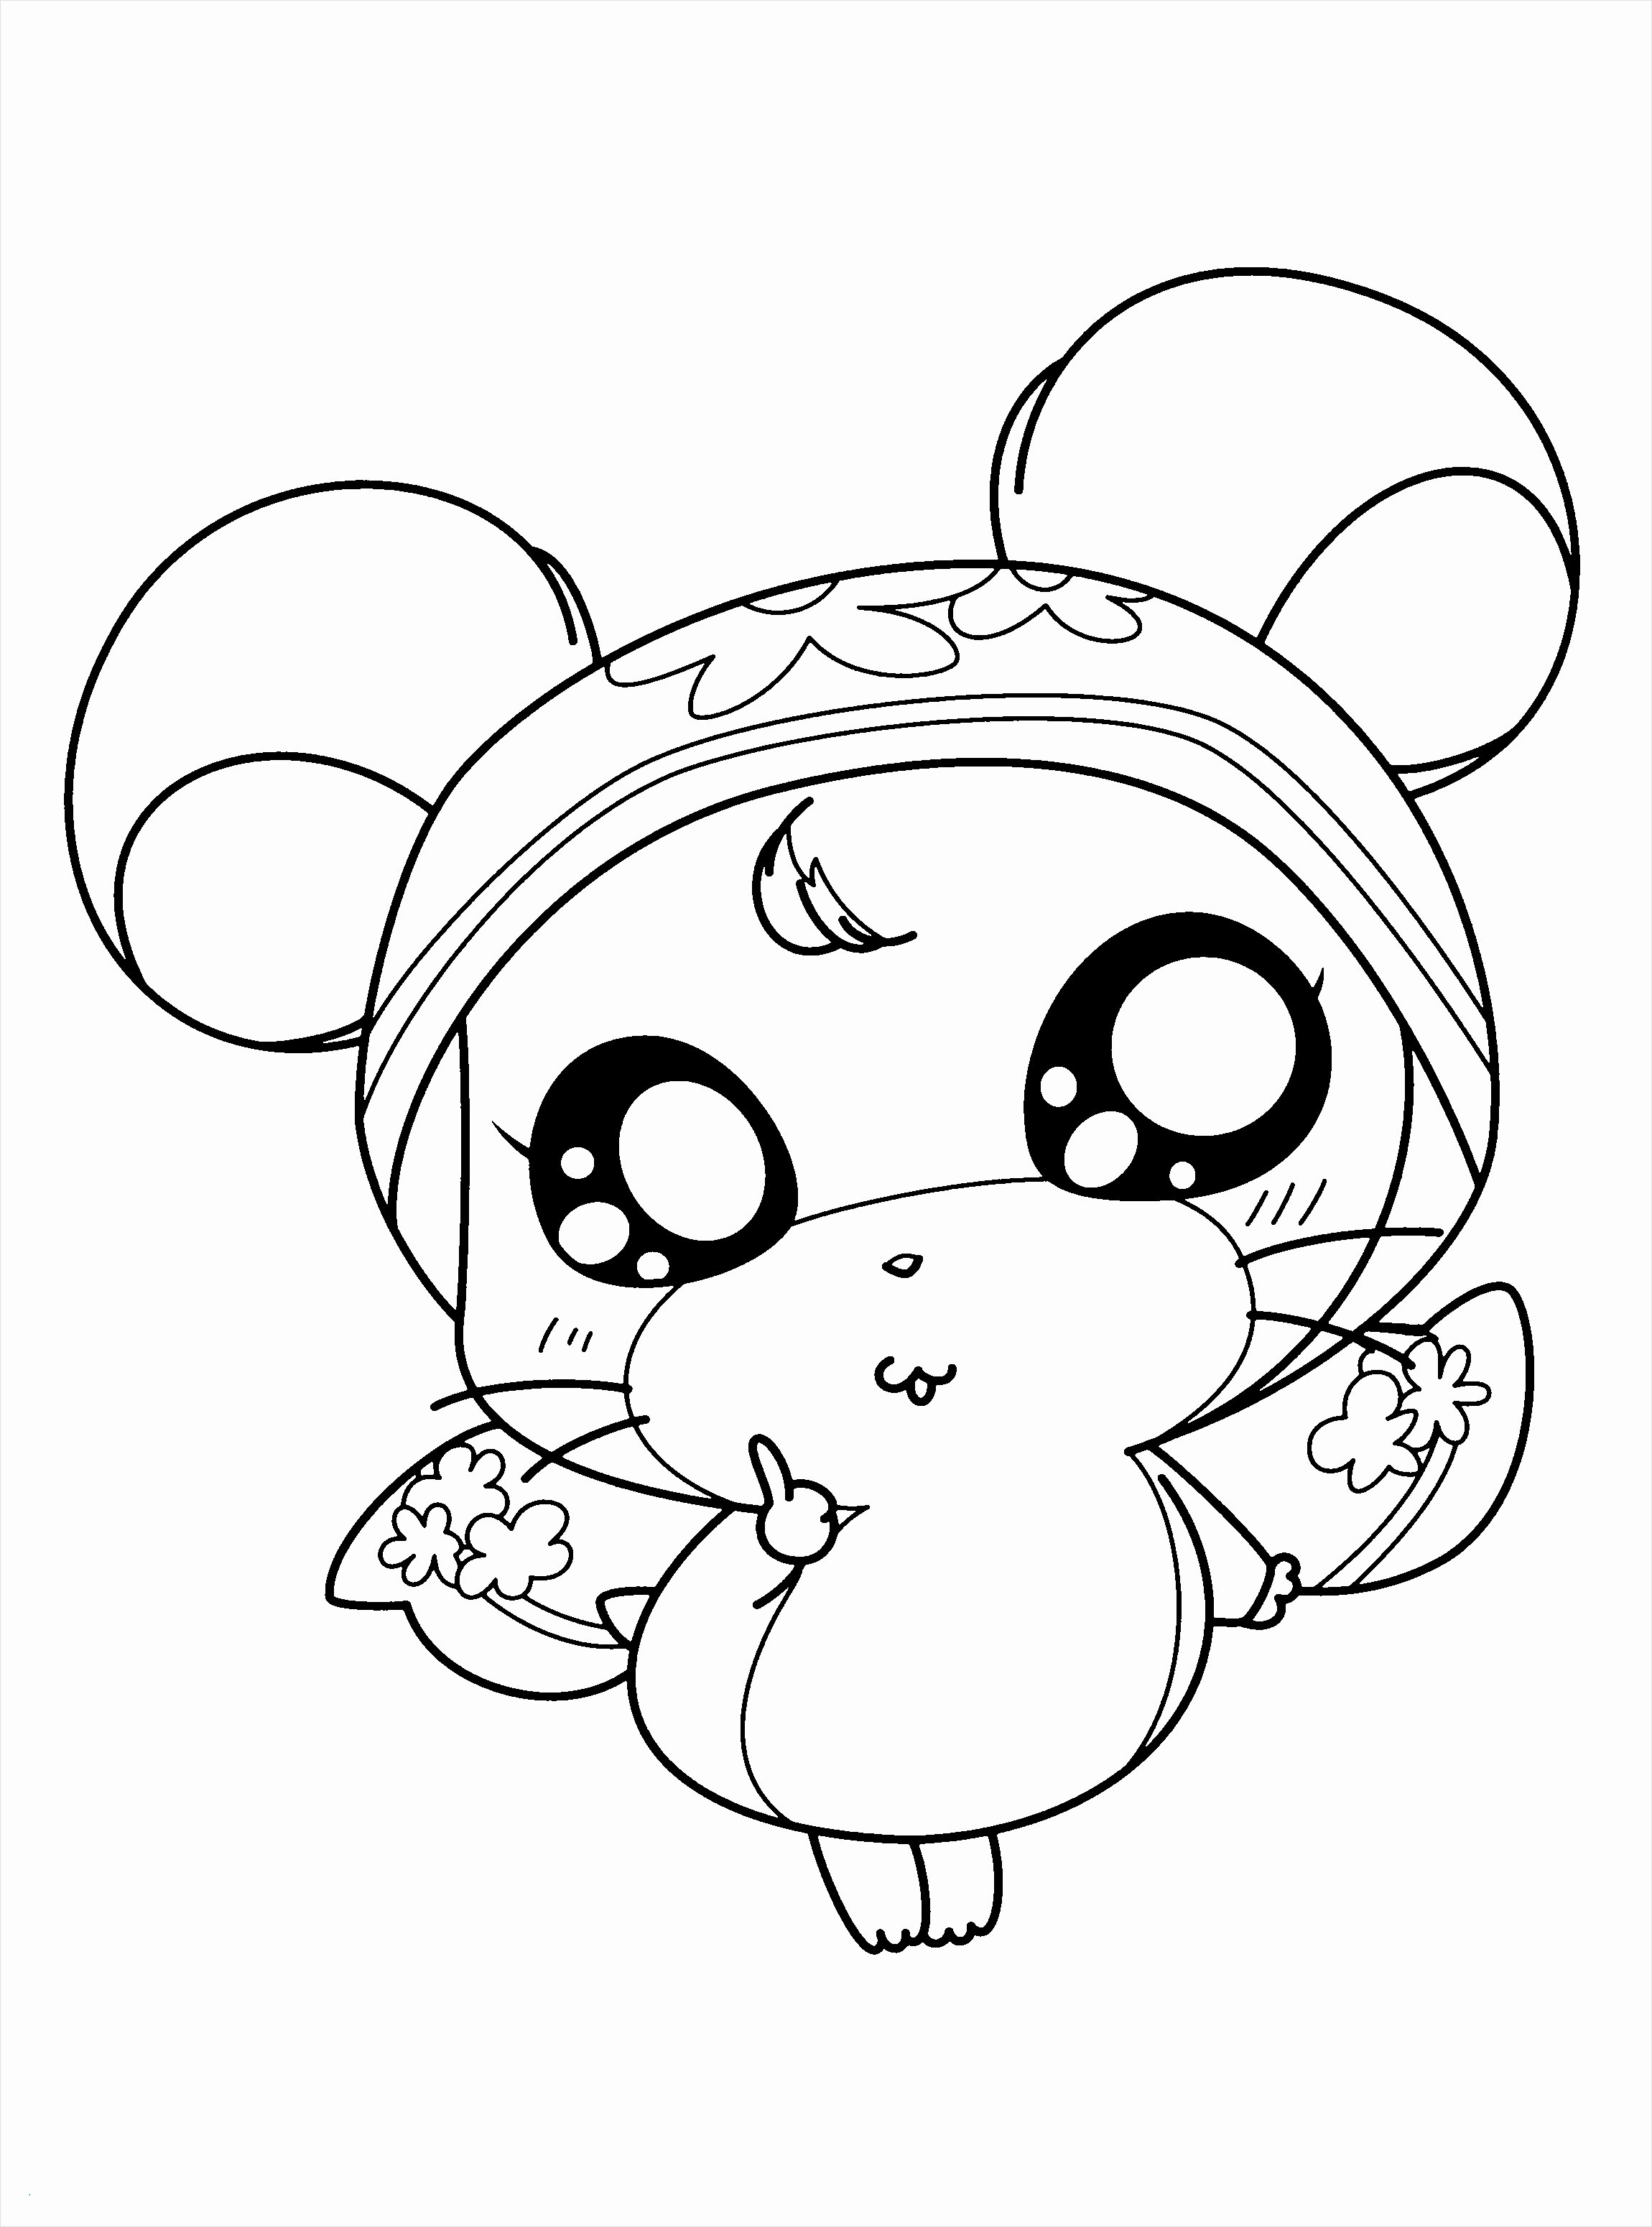 Mouse Coloring Pages  Download 6d - Free For kids